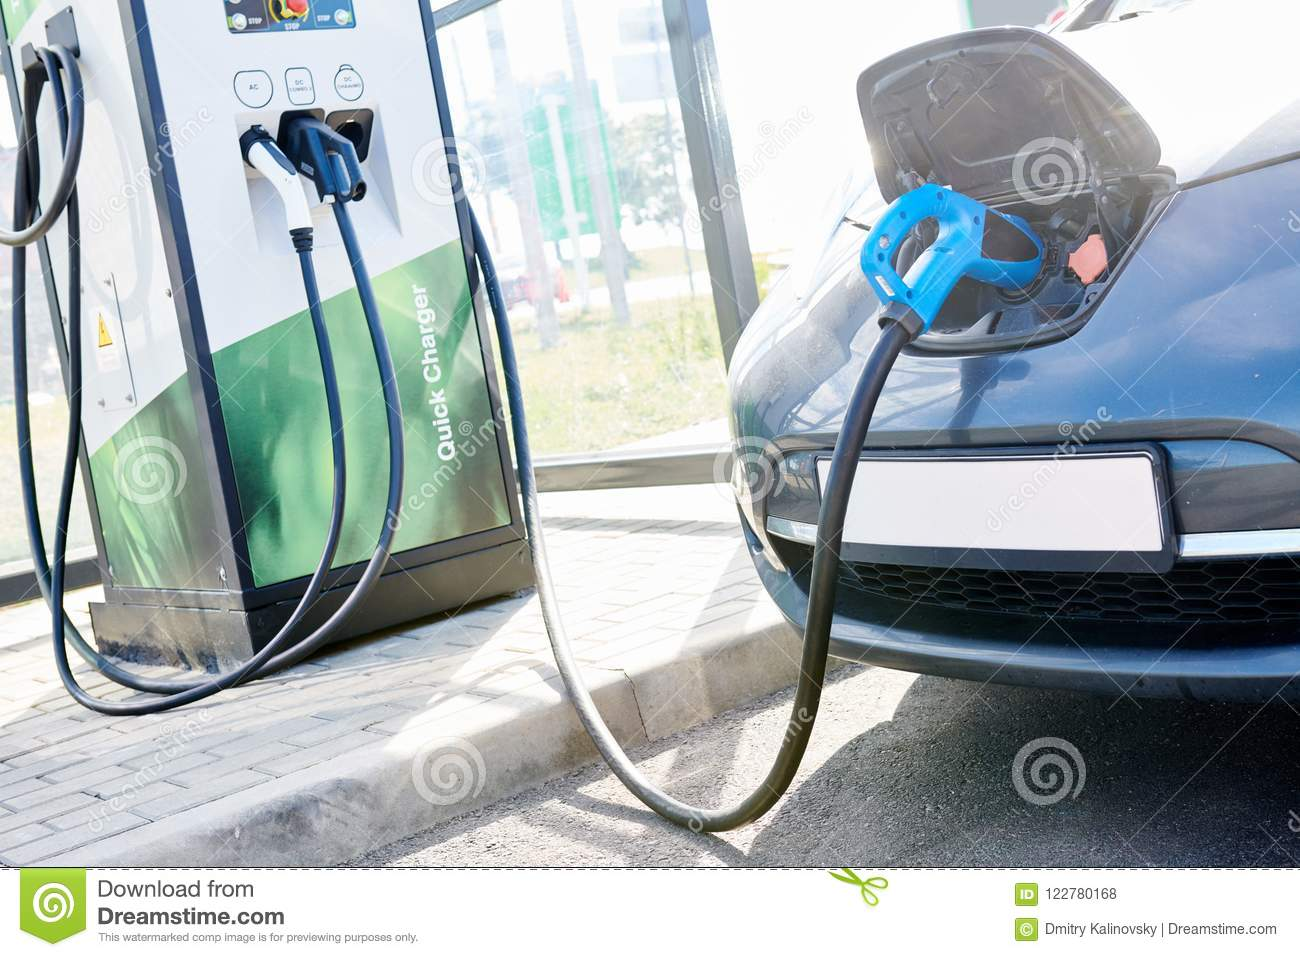 Electric car charging. Ecological automobile